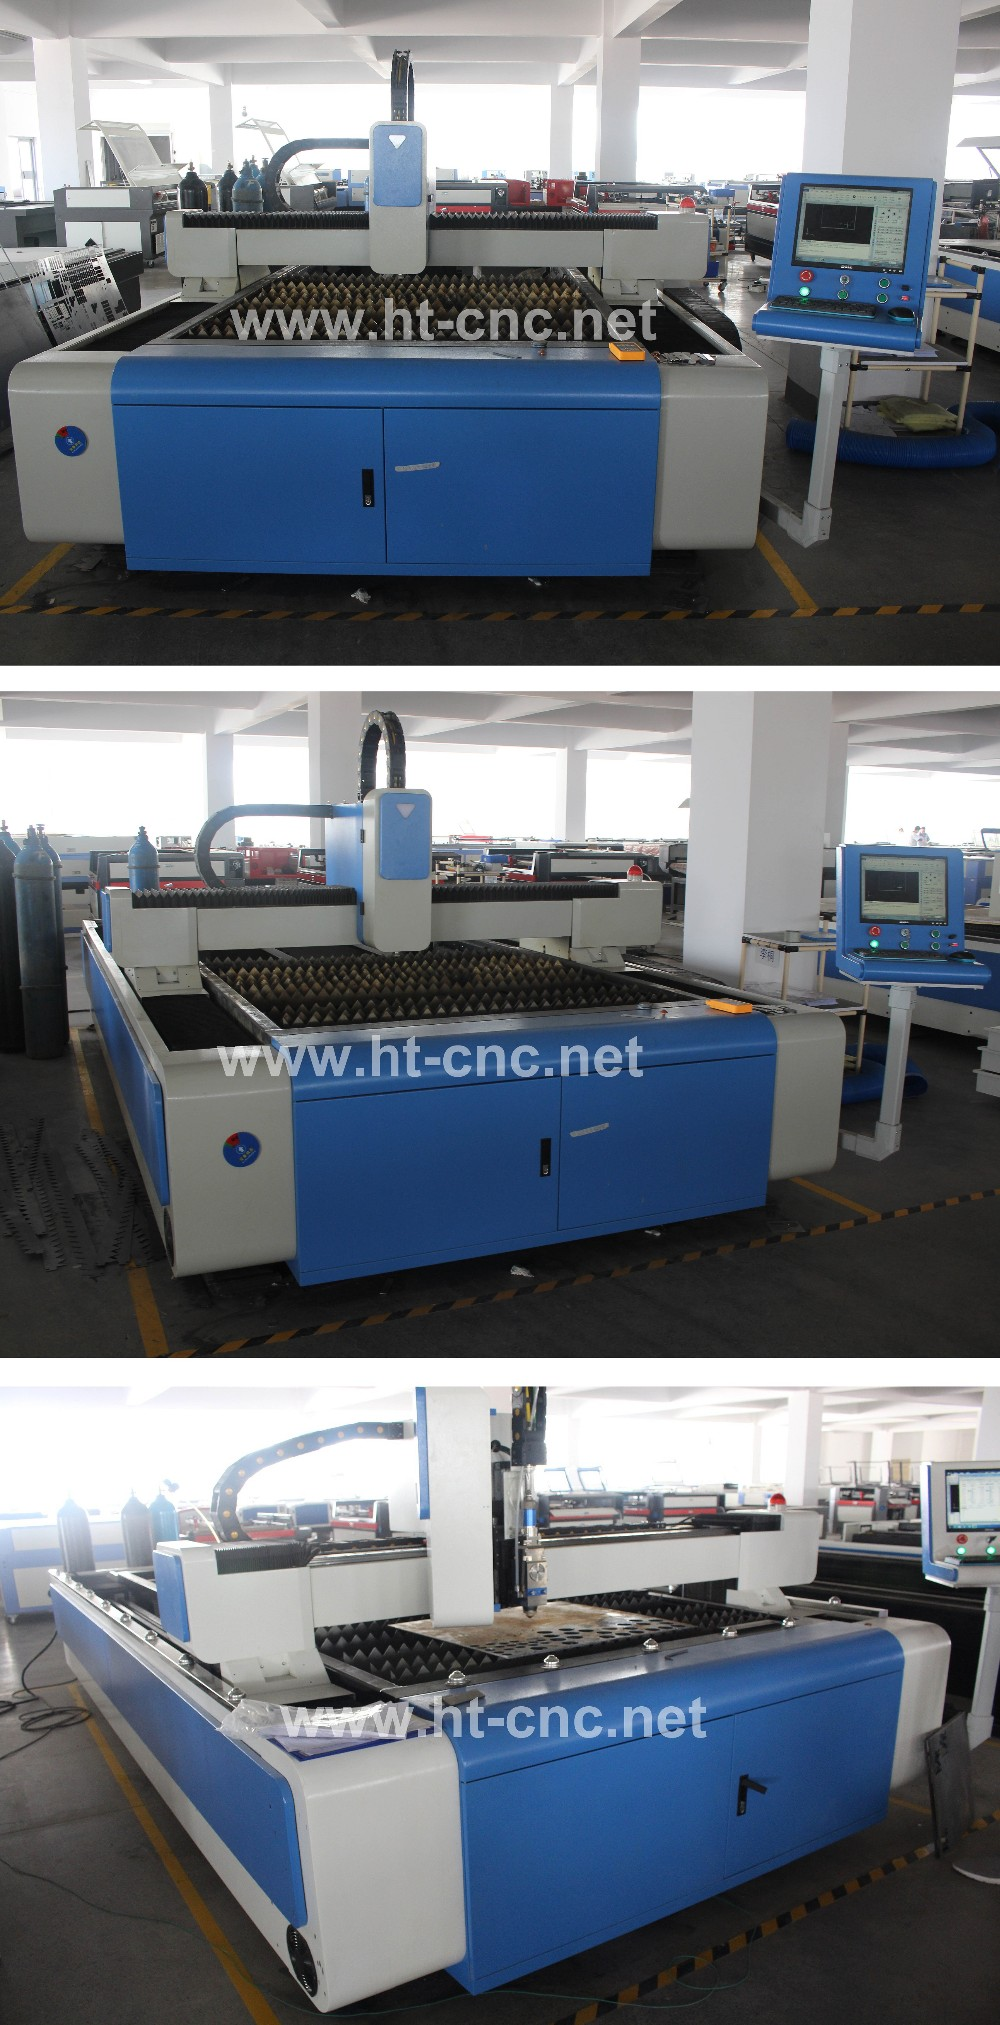 Best parts used 500/750/1000W Fiber metal laser cutter